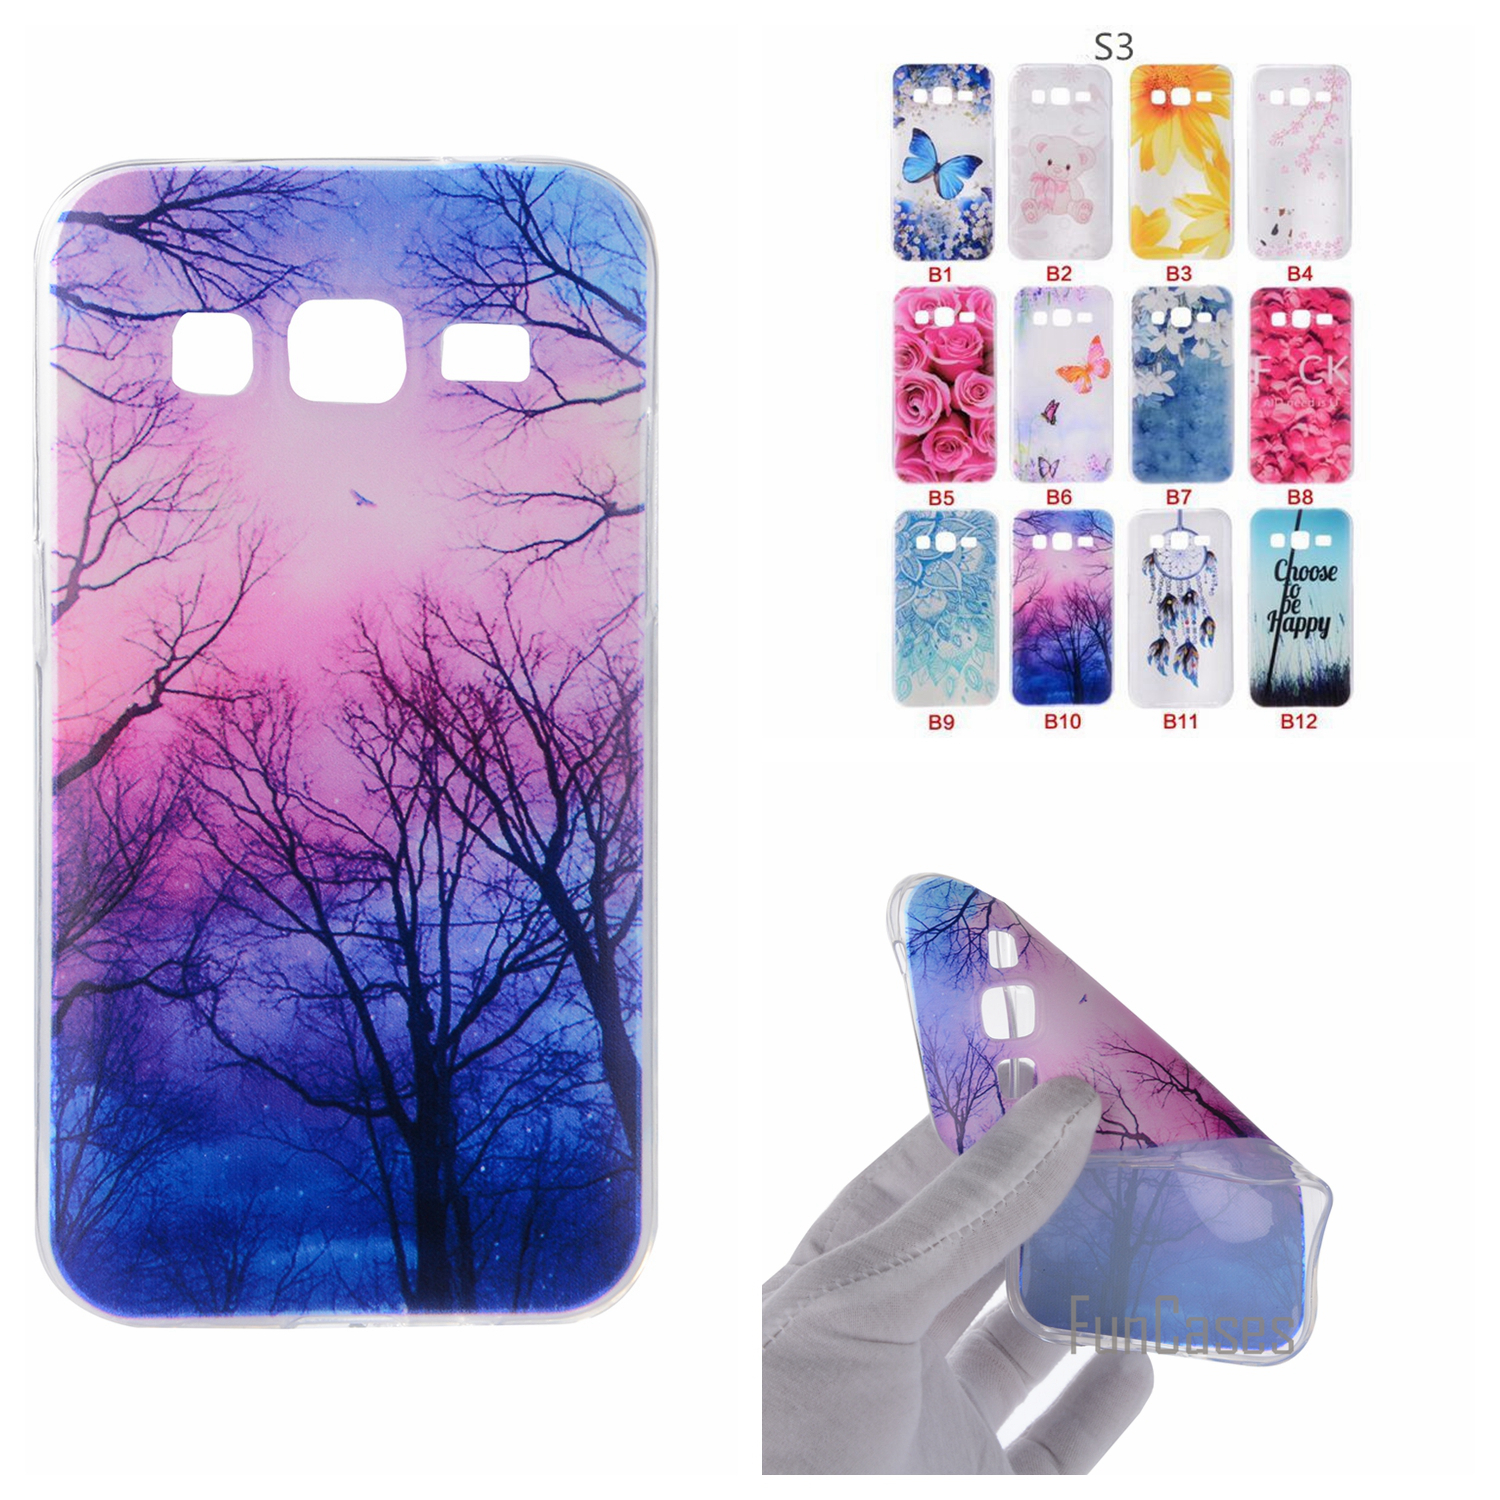 Cartoon Flower Butterfly Tree Painted Back Cover Silicon Gel Soft TPU Mobile Phone Case For Samsung Galaxy S5 S4 S3 S6 S7 Edge